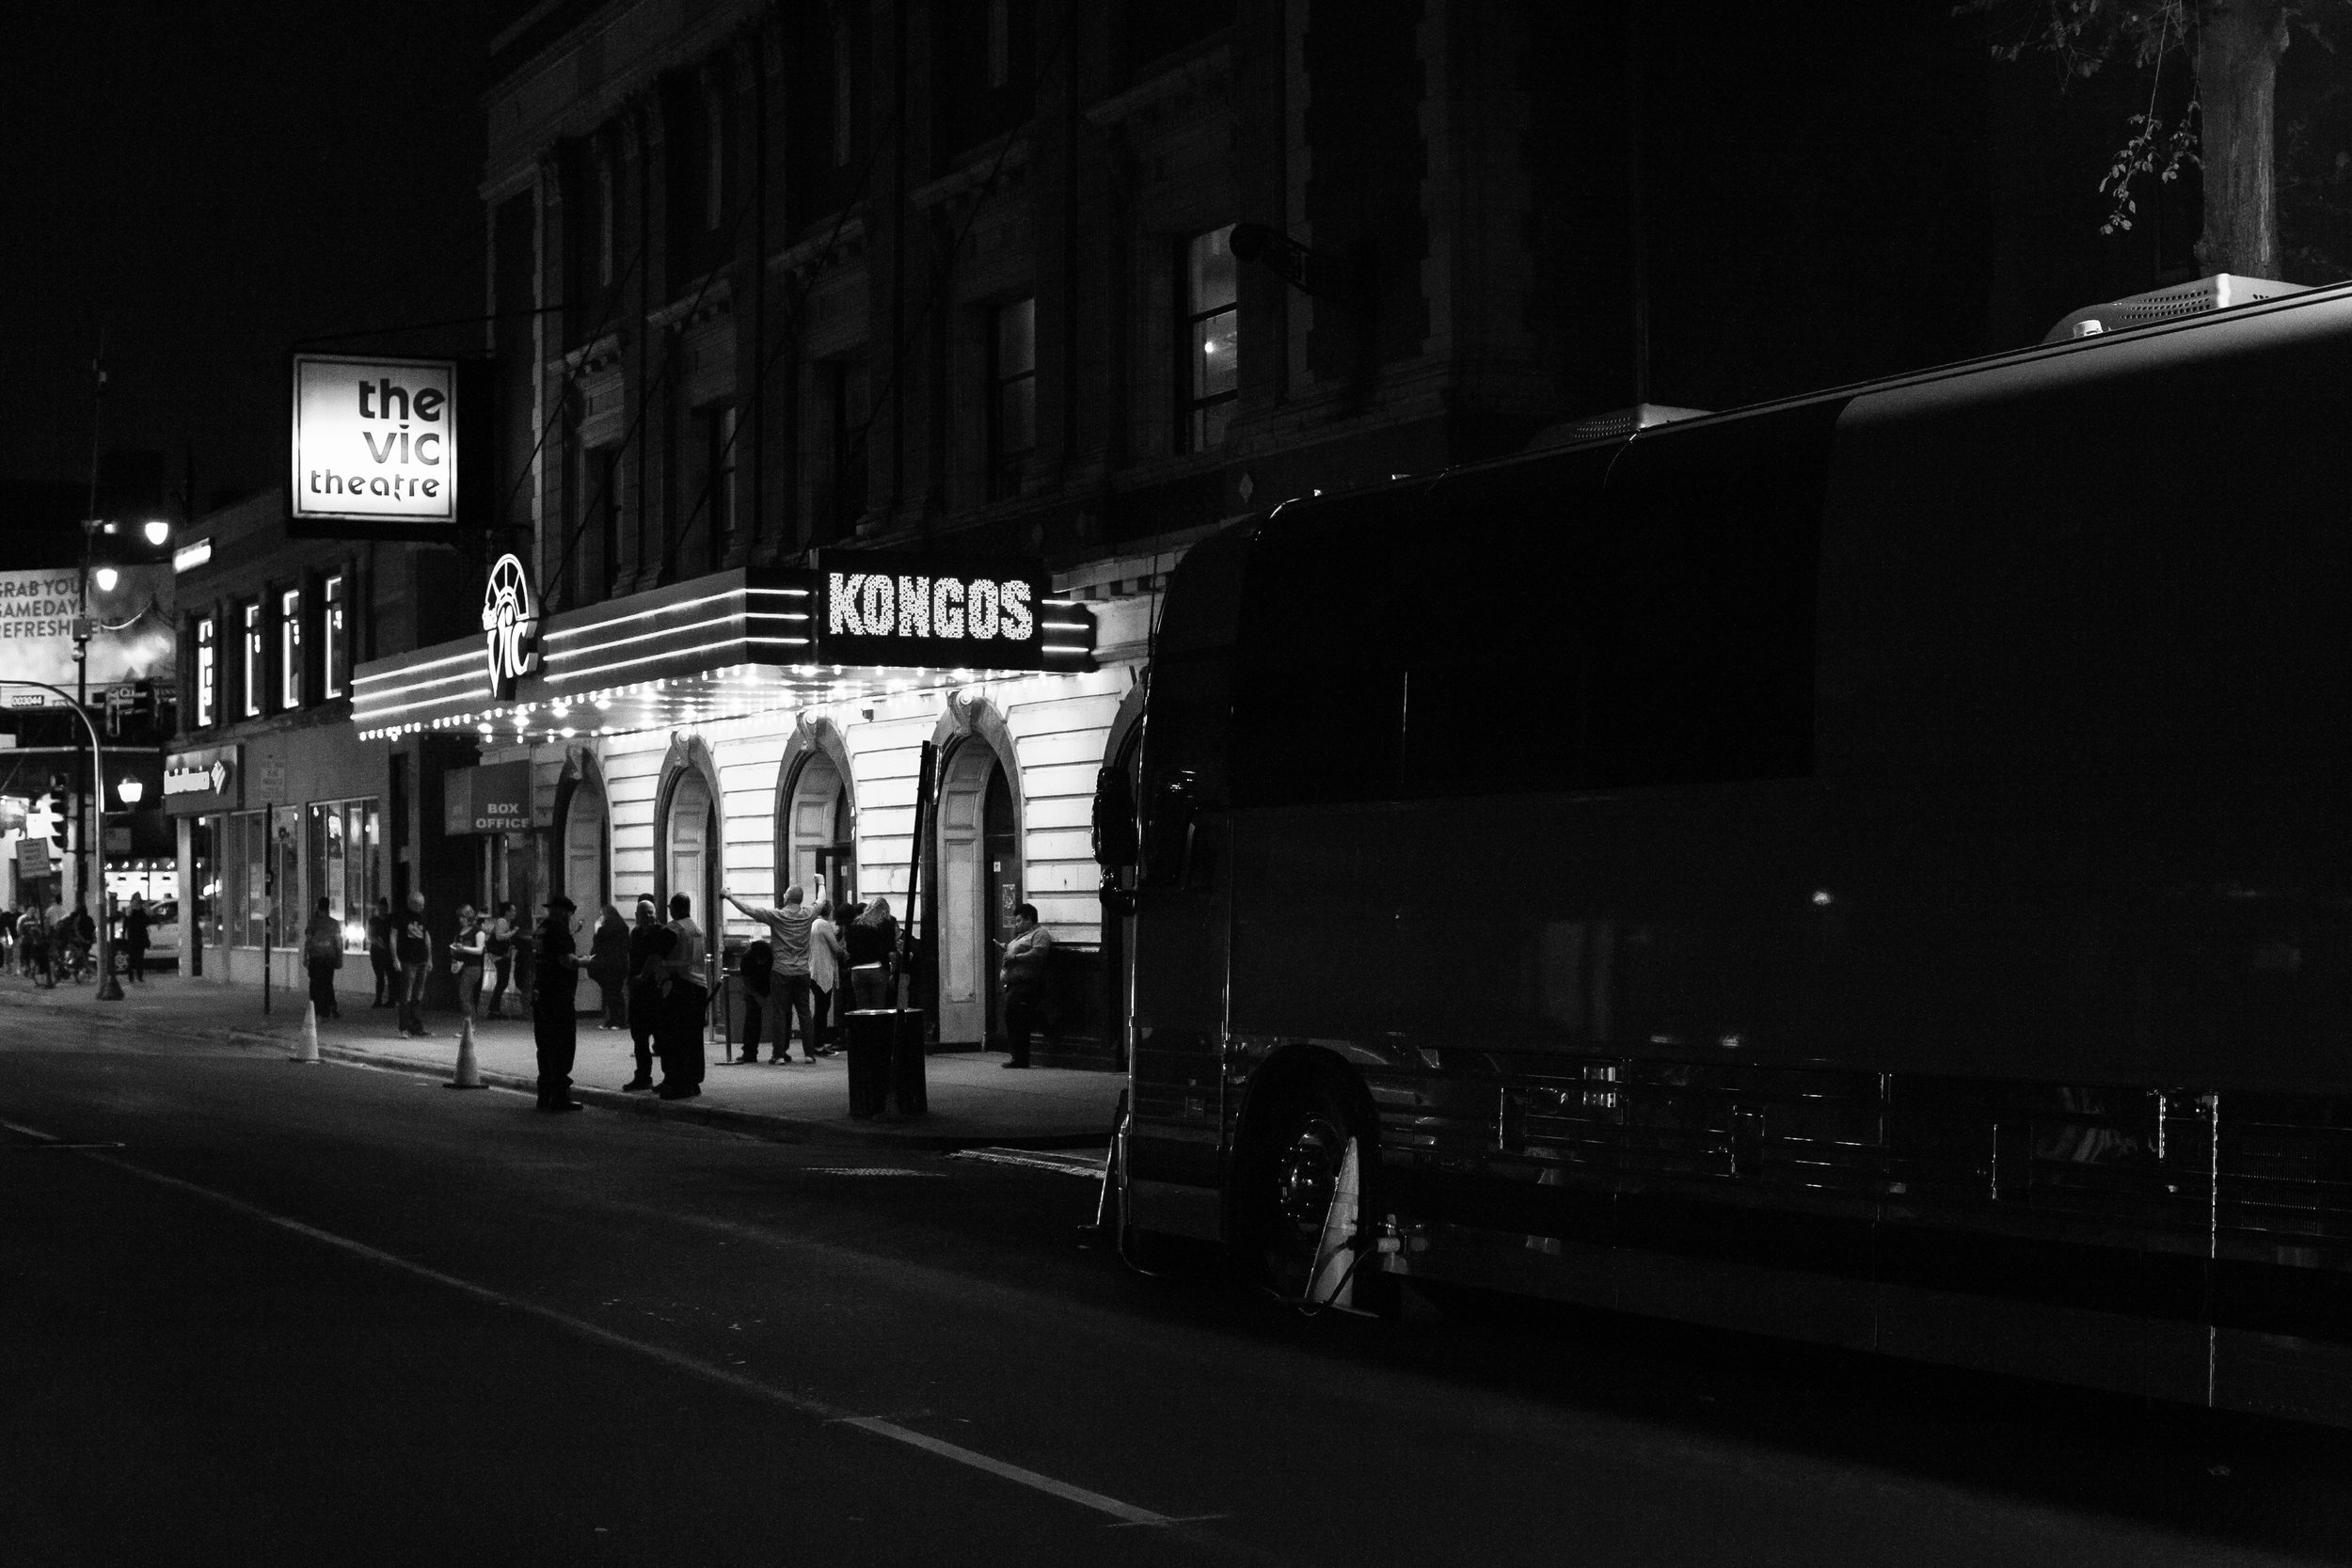 Chicago, Illinois, at The Vic Theatre, where Jeff first started taking photos for us